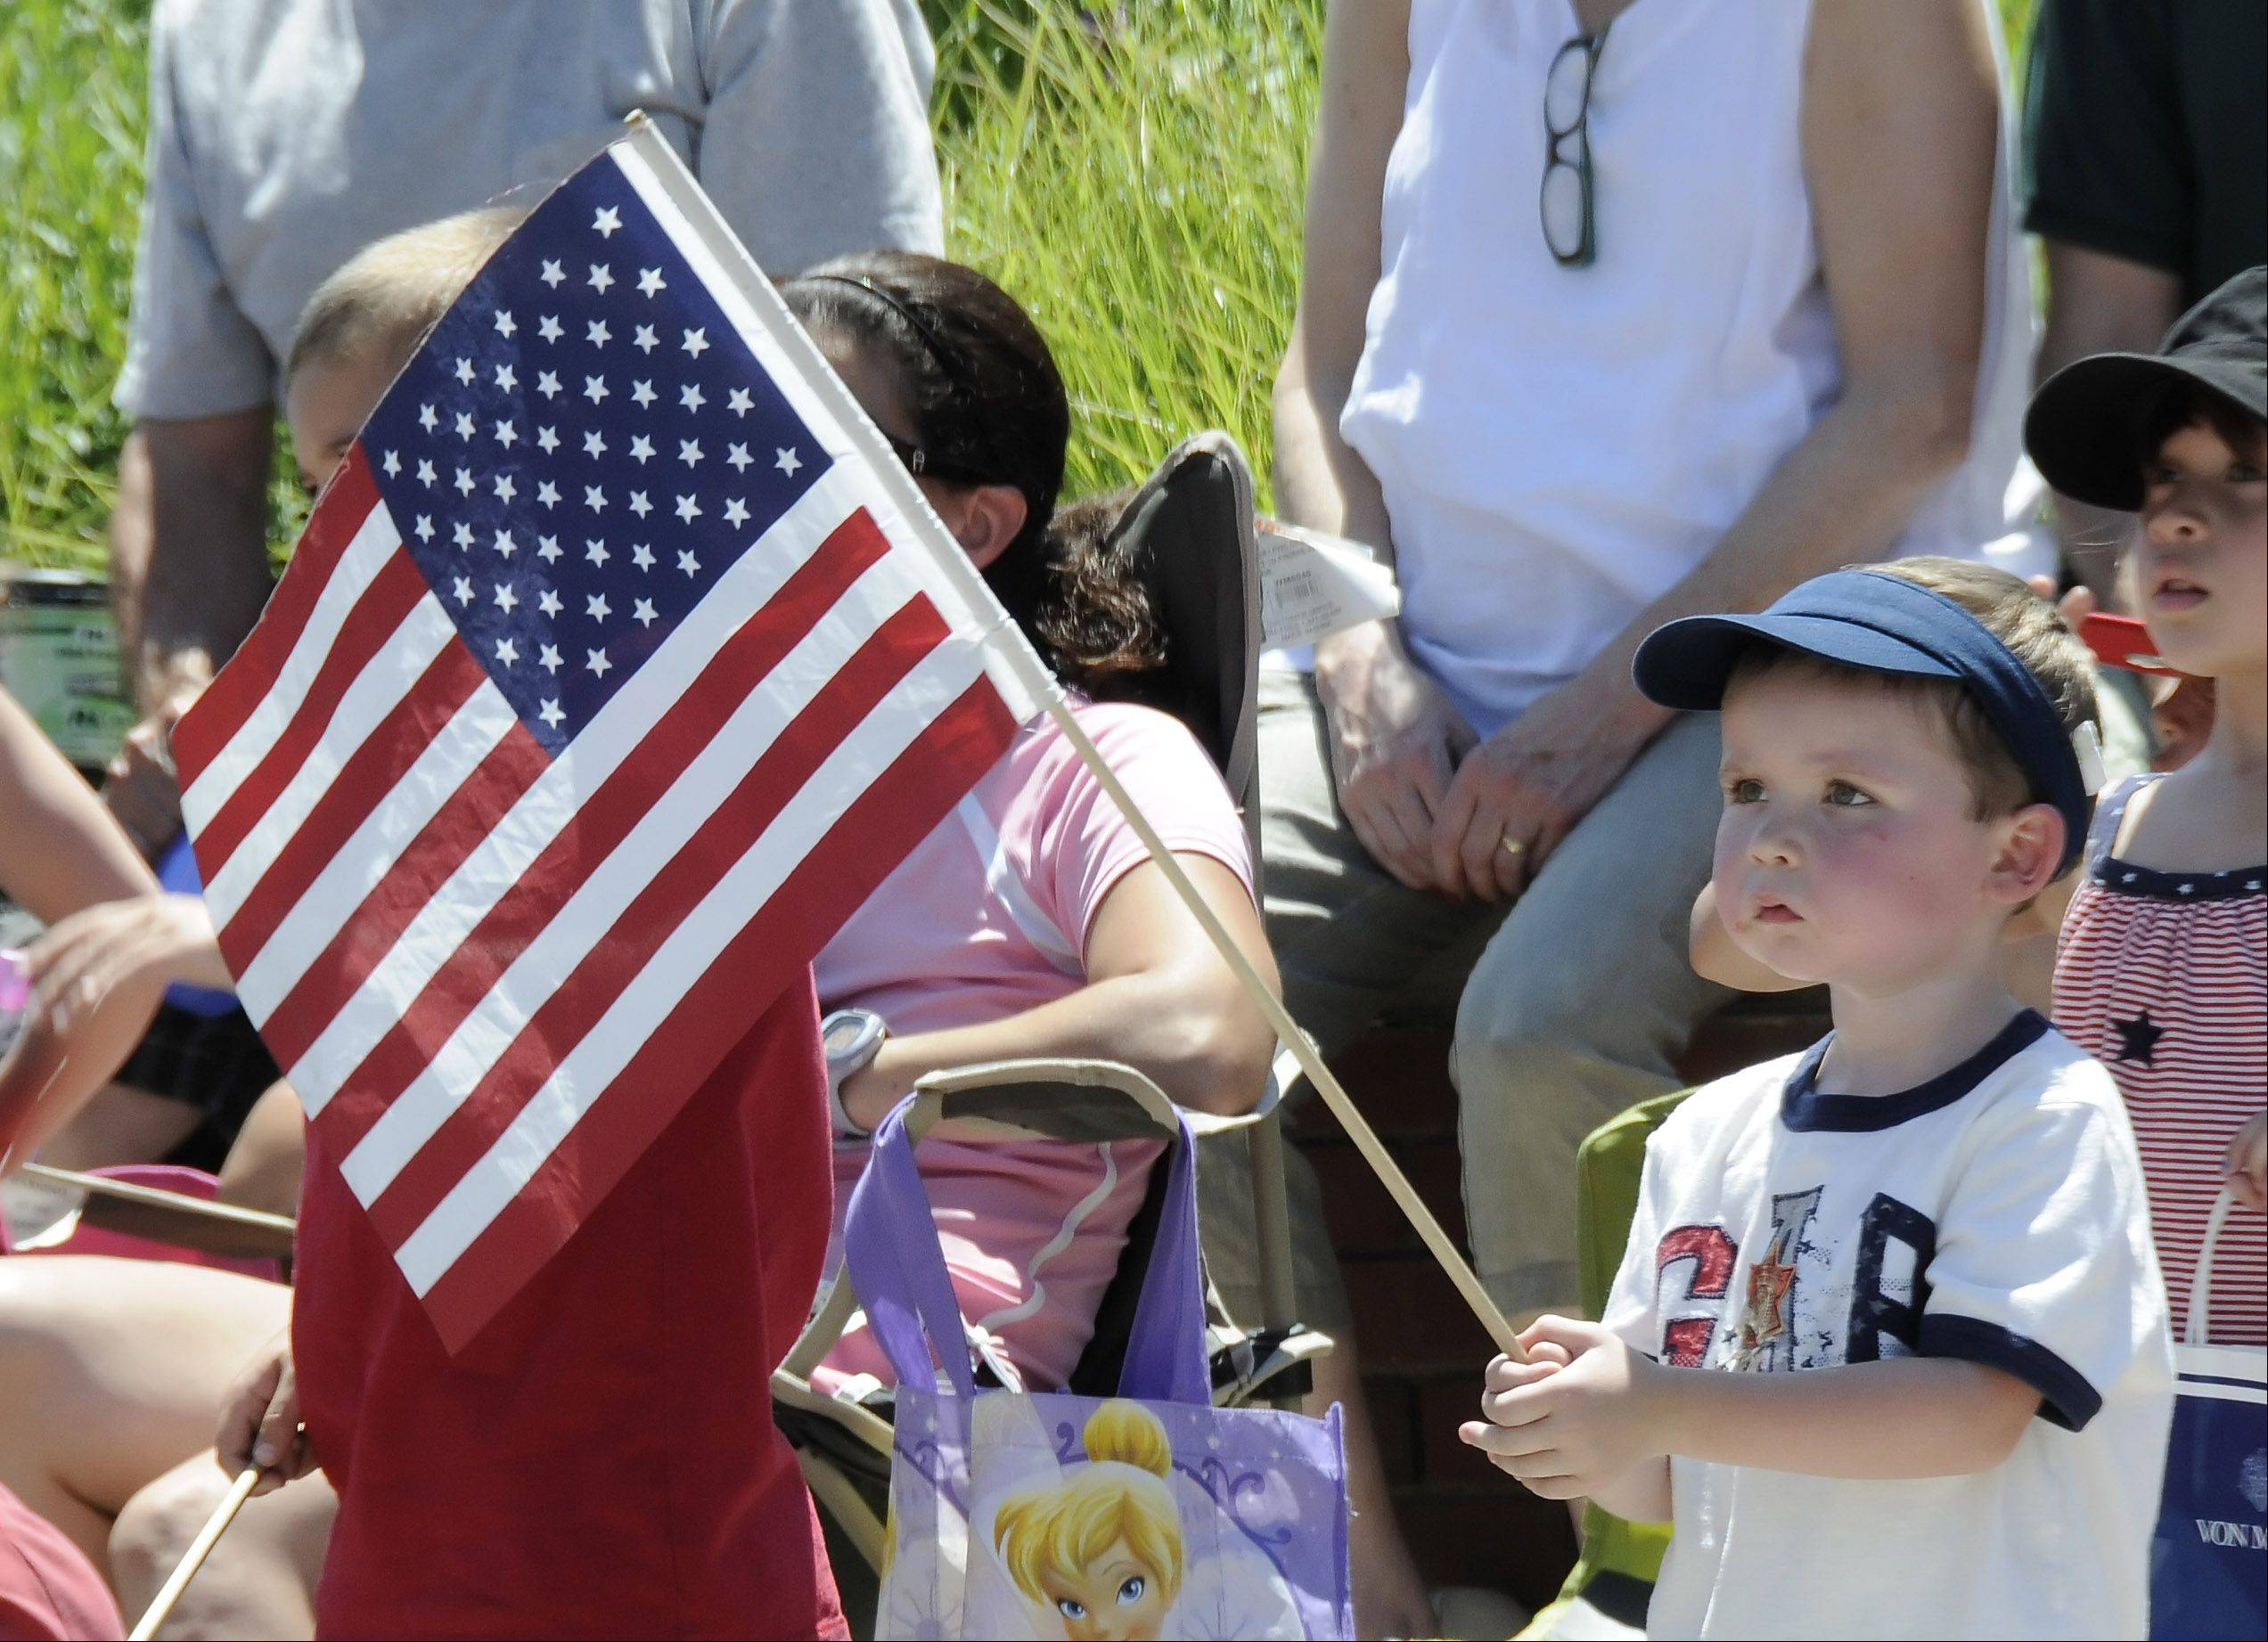 Jeffrey Syme from Winfield, shows his solemn patriotic side at Glen Ellyn's Independence Day parade.